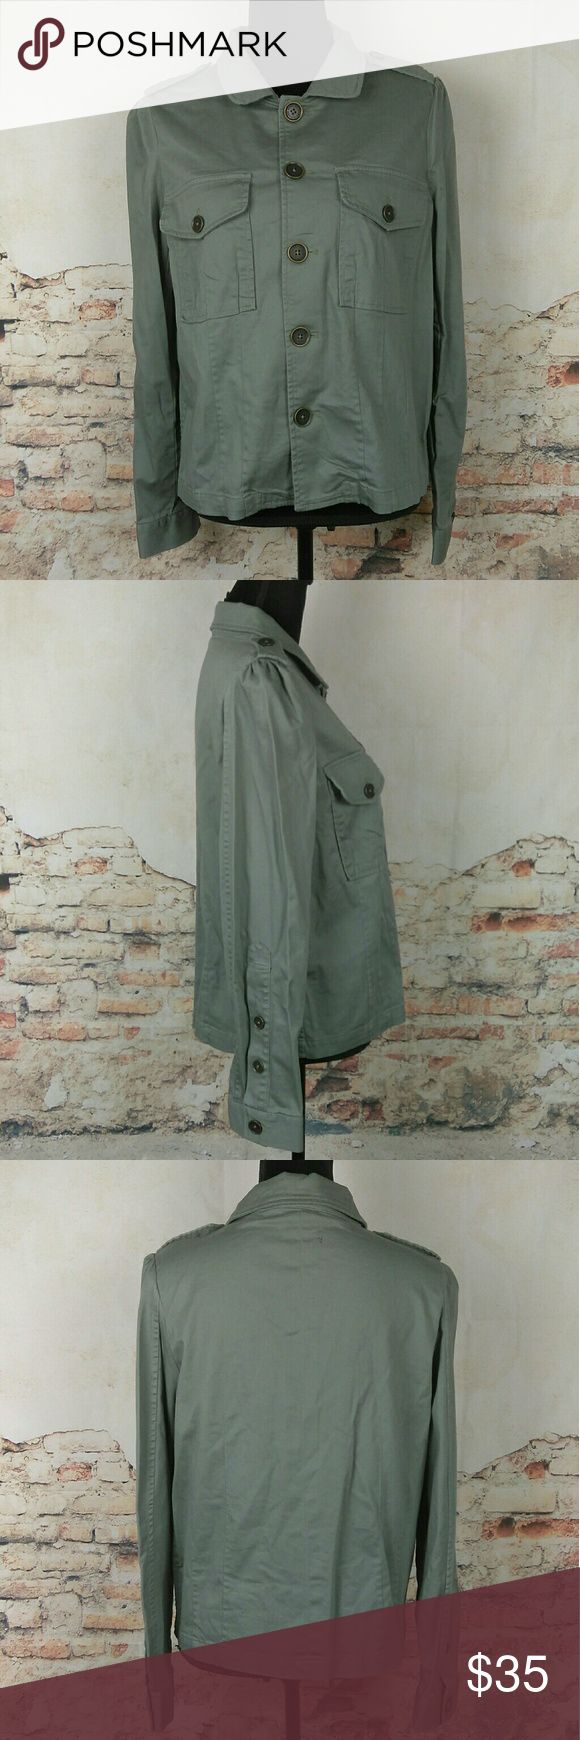 Marc by Marc Jacobs Sz L Army Fatigue Green Jacket Marc by Marc Jacobs Sz L Army Fatigue Green Button Down Jacket Stretch Cotton Marc By Marc Jacobs Jackets & Coats